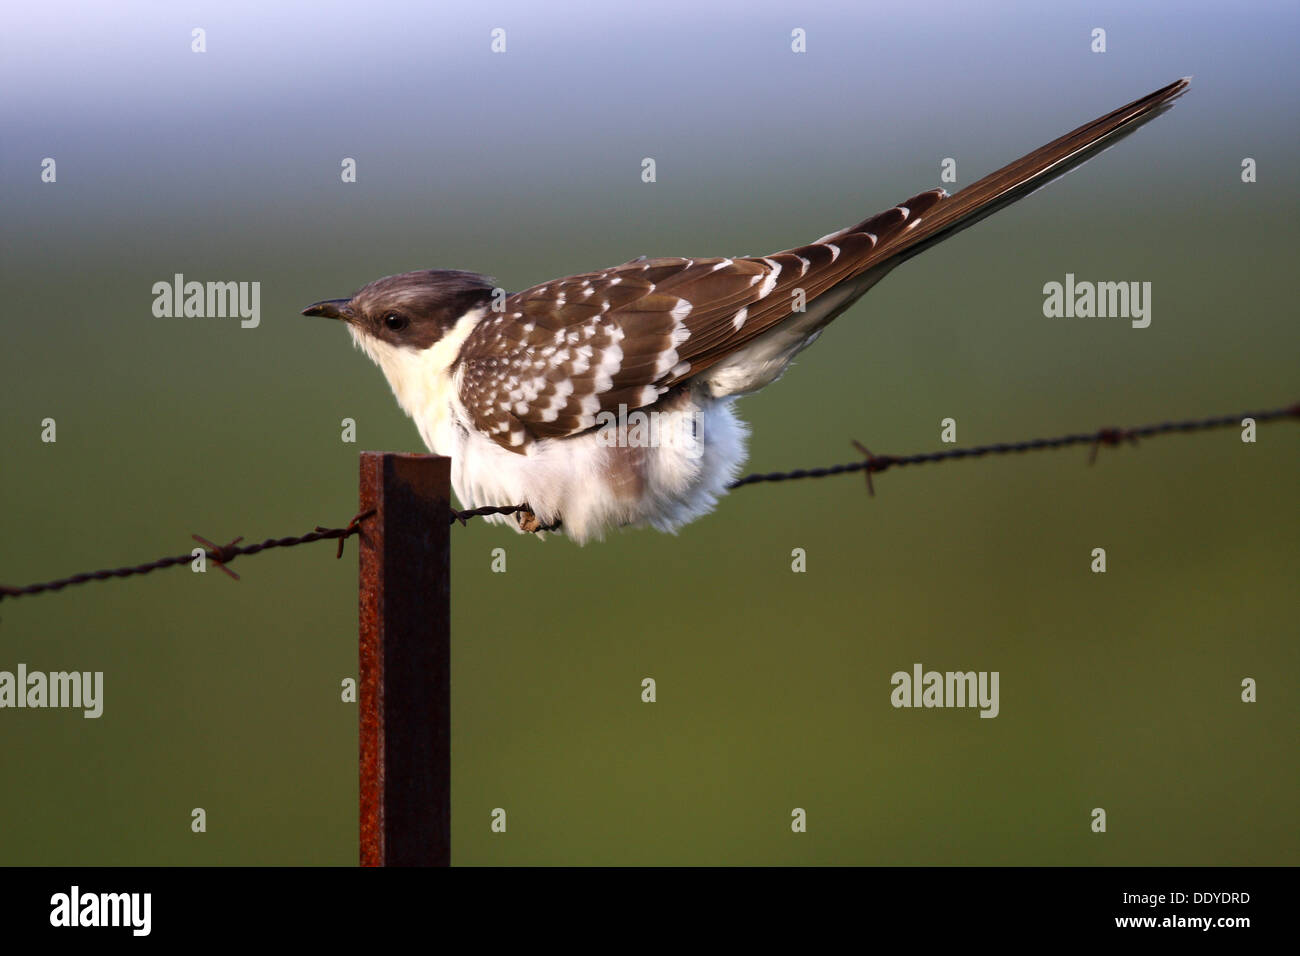 Great Spotted Cuckoo (Clamator glandarius) sitting on rusty barbed wire fence, Extremadura, Spain, Europe - Stock Image